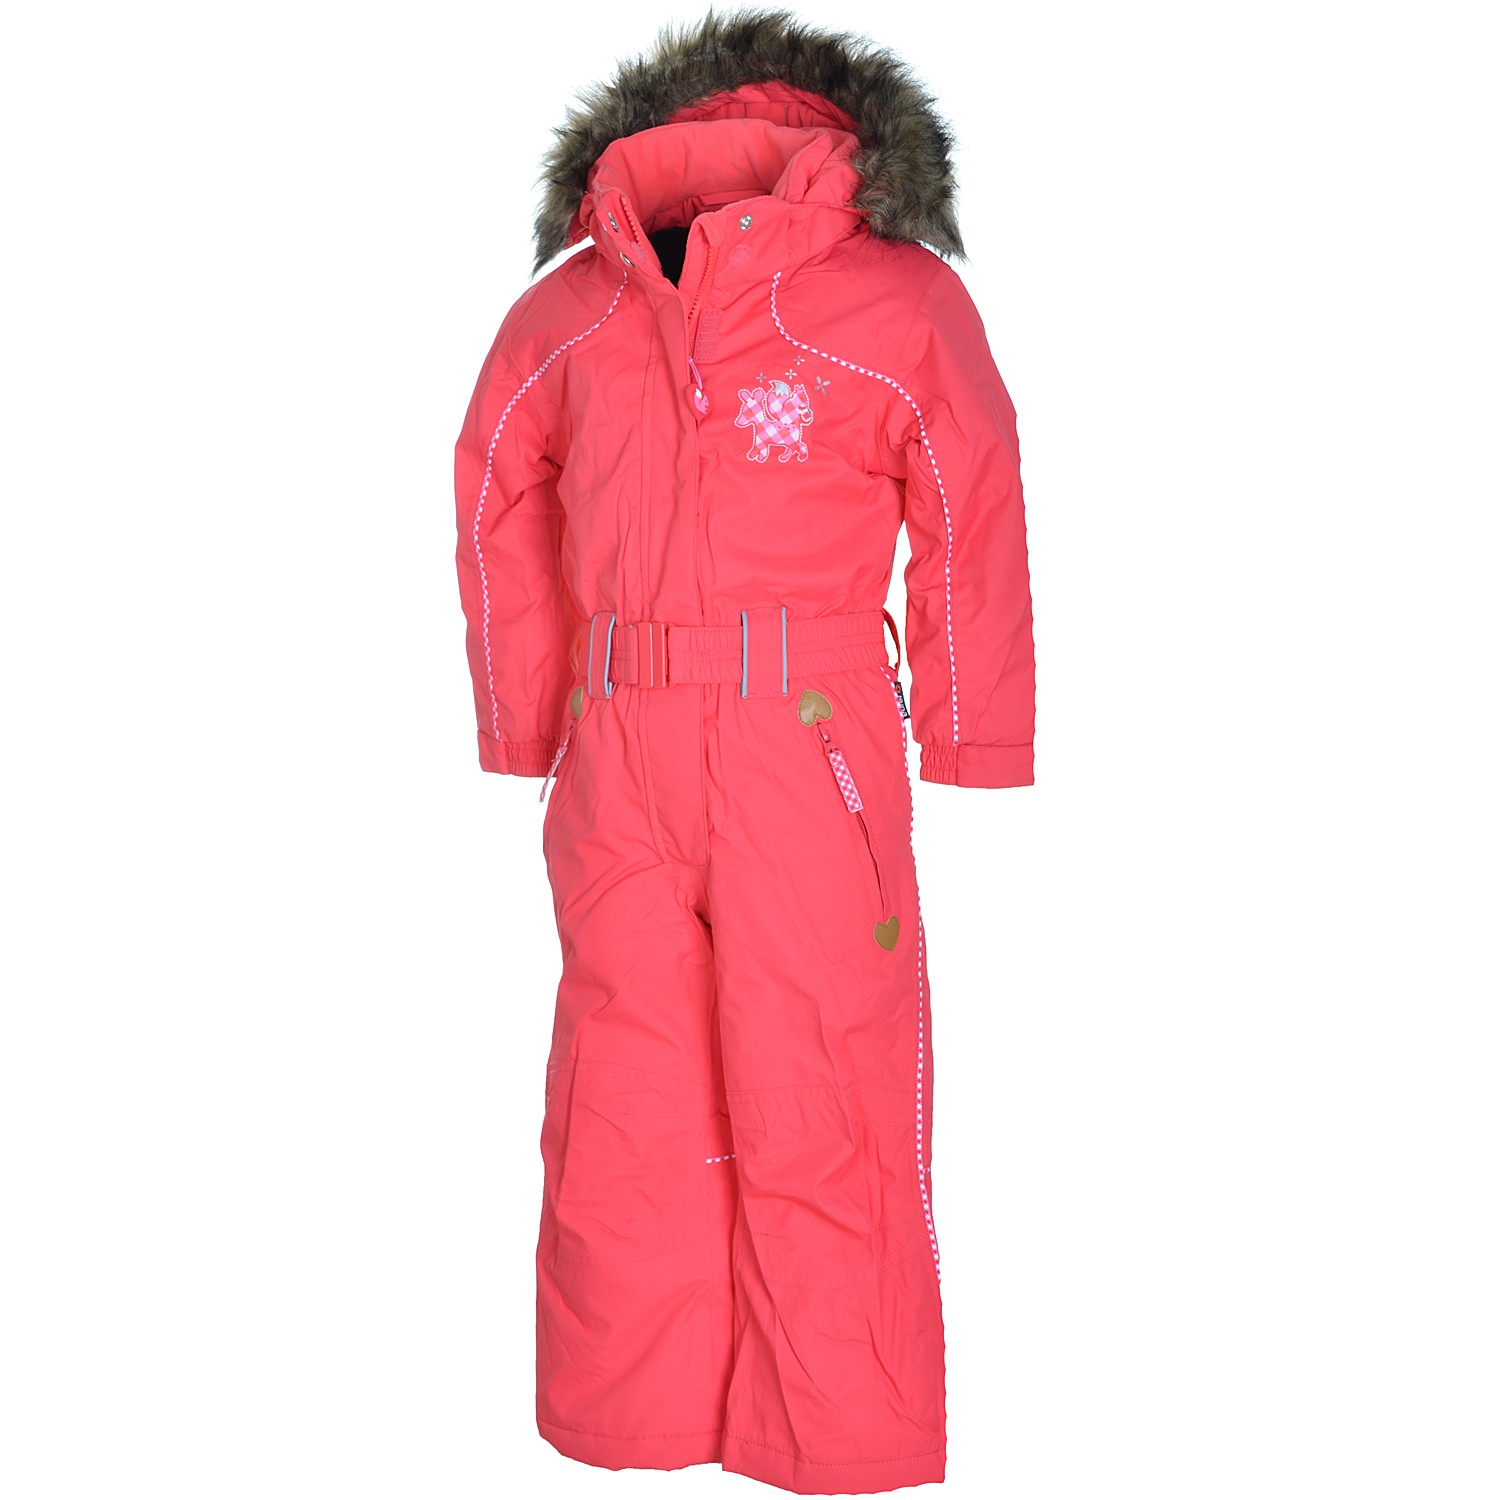 etirel moneypenny kinder winter schneeanzug kids pink overall ski ebay. Black Bedroom Furniture Sets. Home Design Ideas